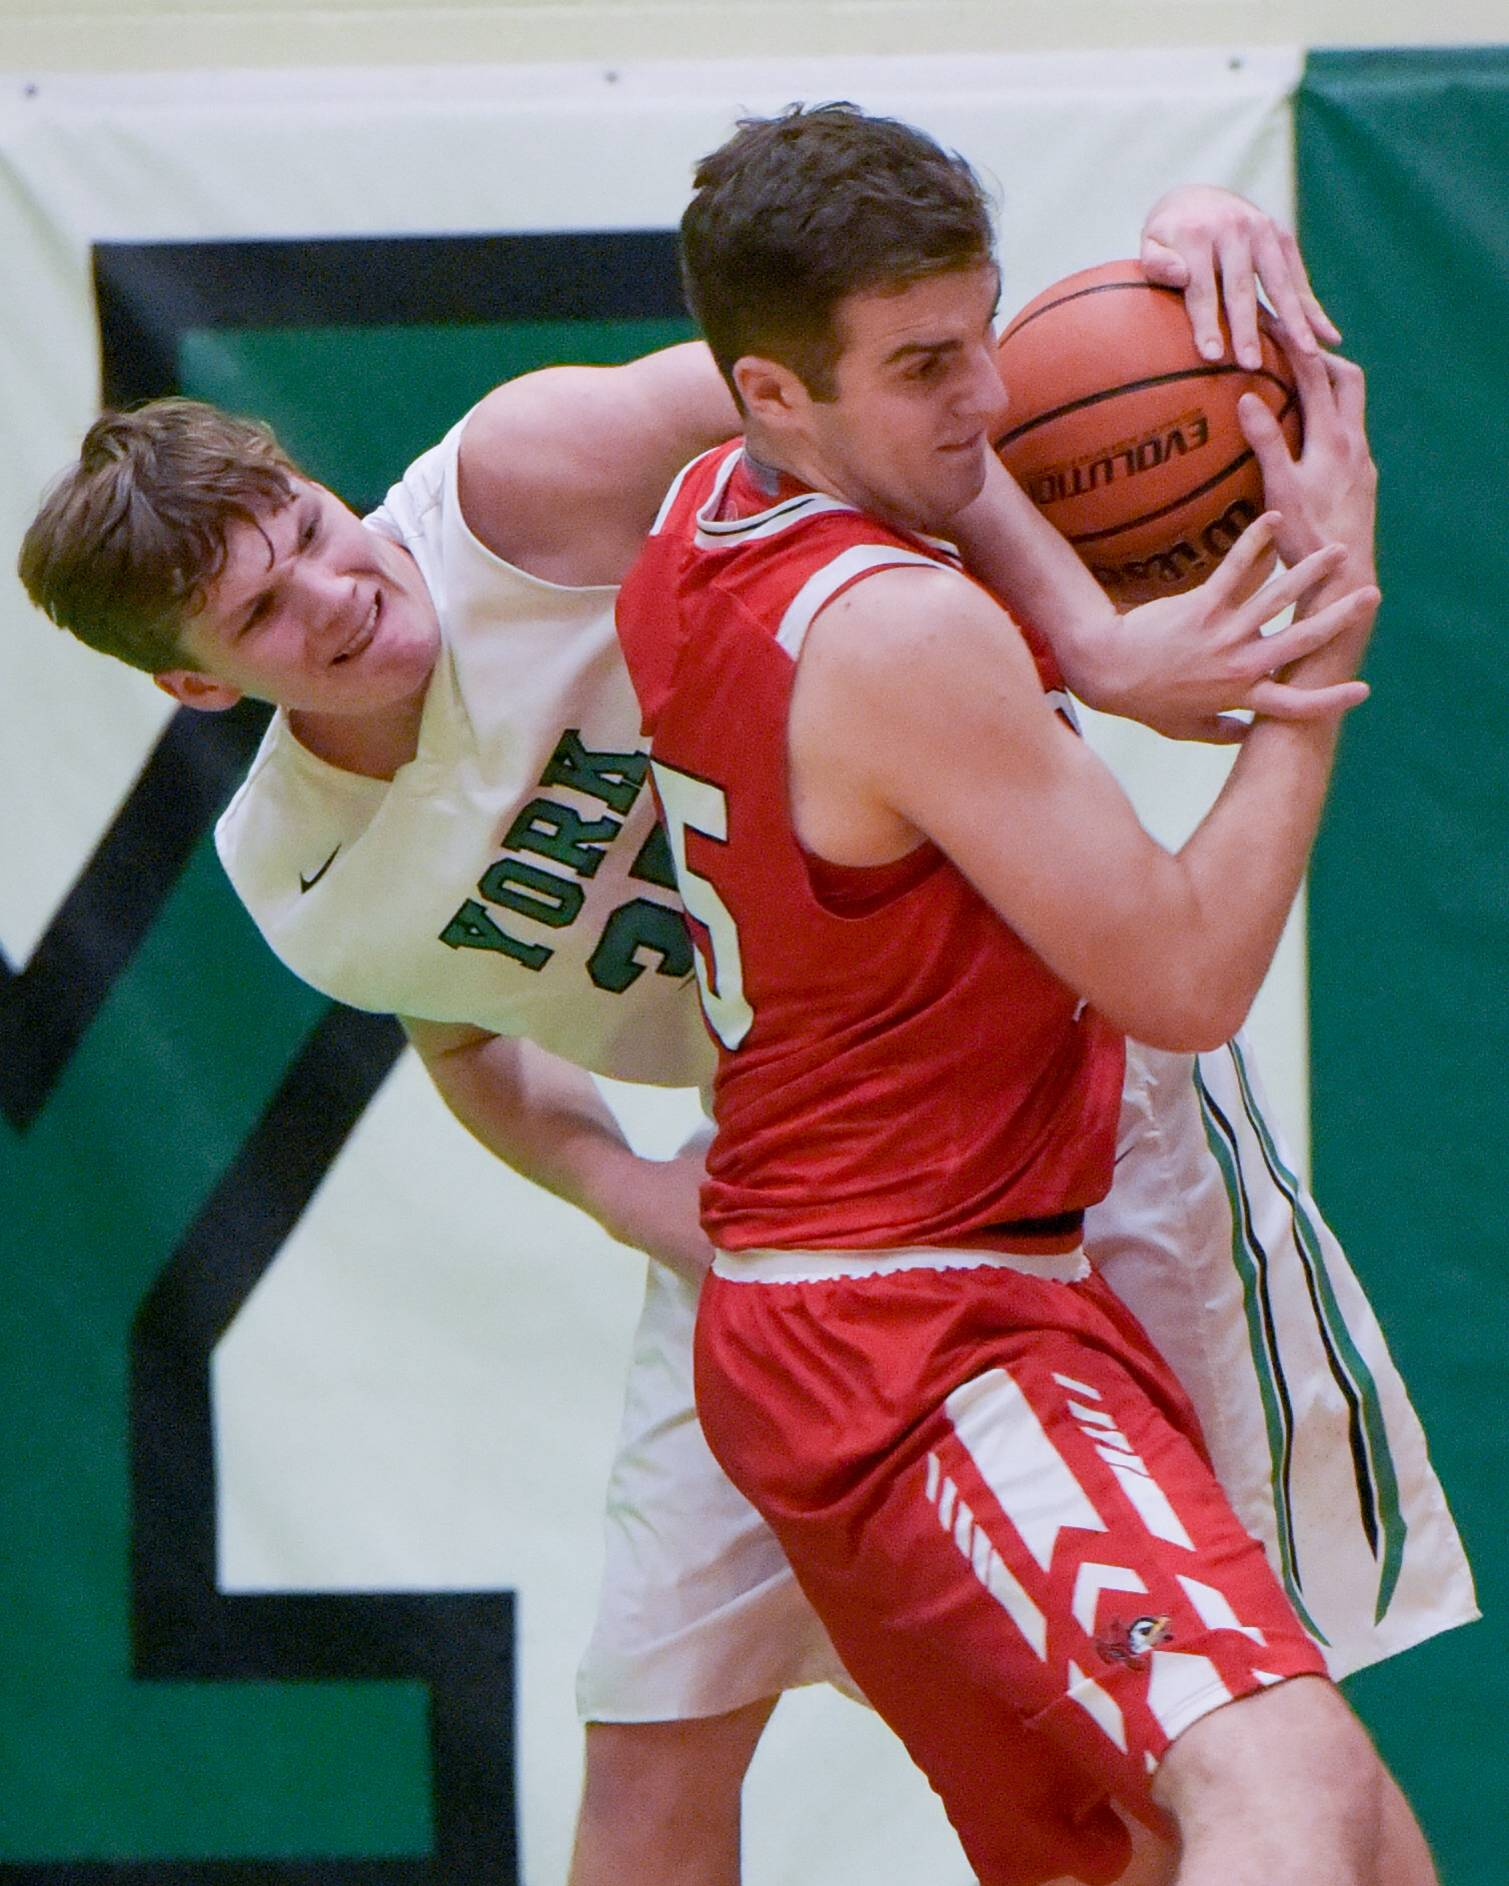 York's Sam Walsh (35) and Benet's Colin Crothers (55) struggle for control of the ball during a boys varsity basketball game on Dec. 5, 2017 in Elmhurst.